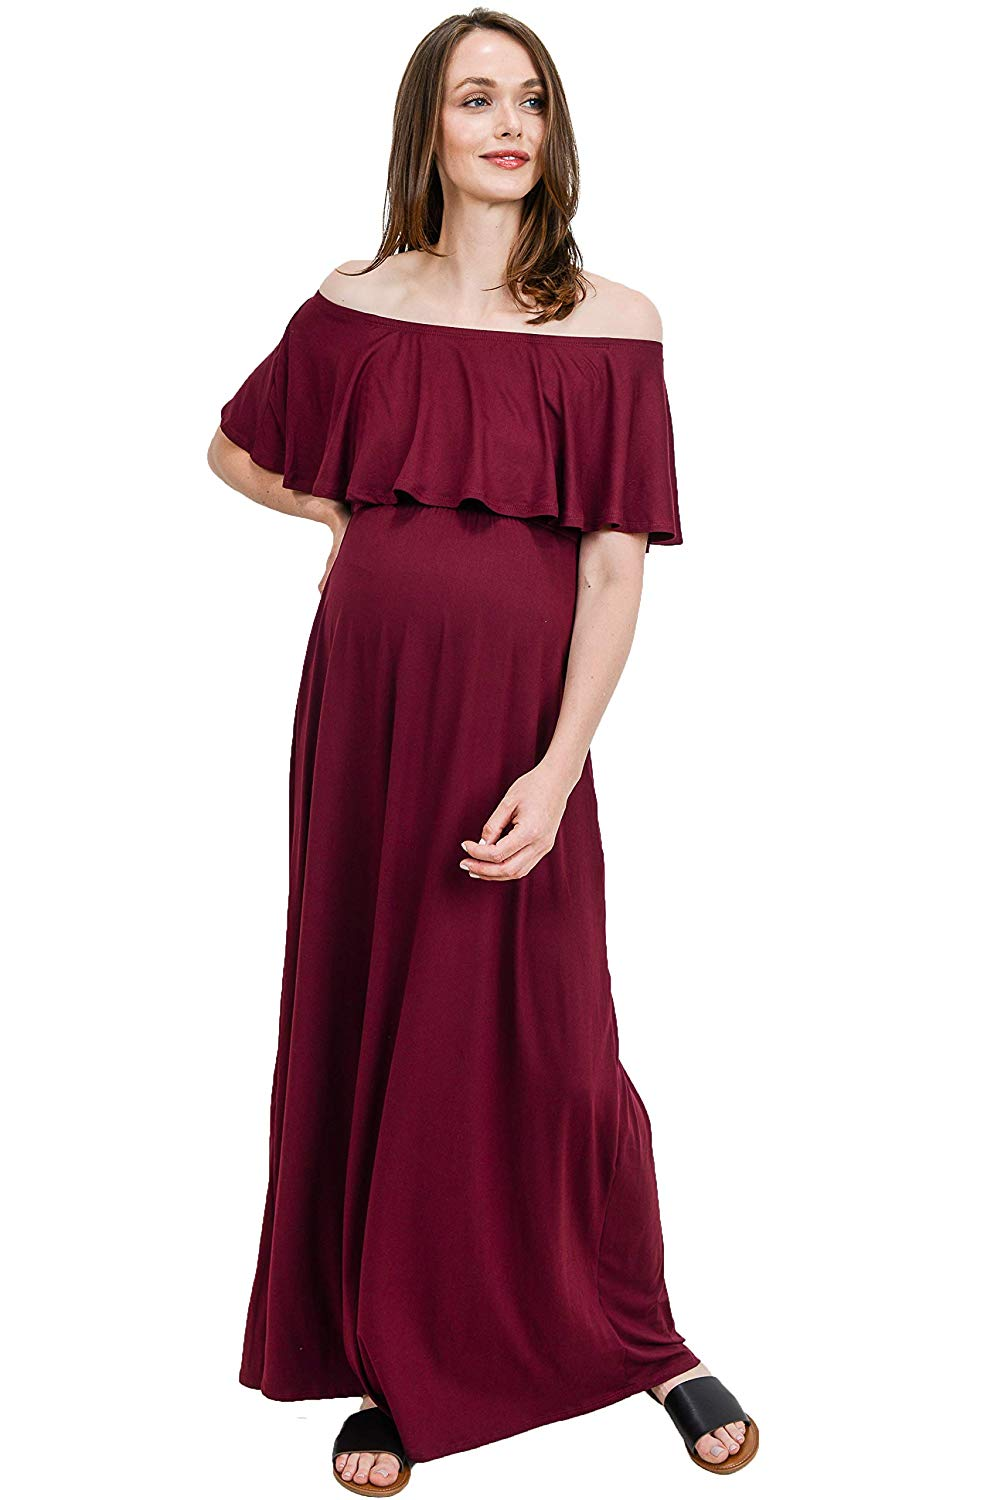 Red Maternity Maxi Dress - Mommylicious